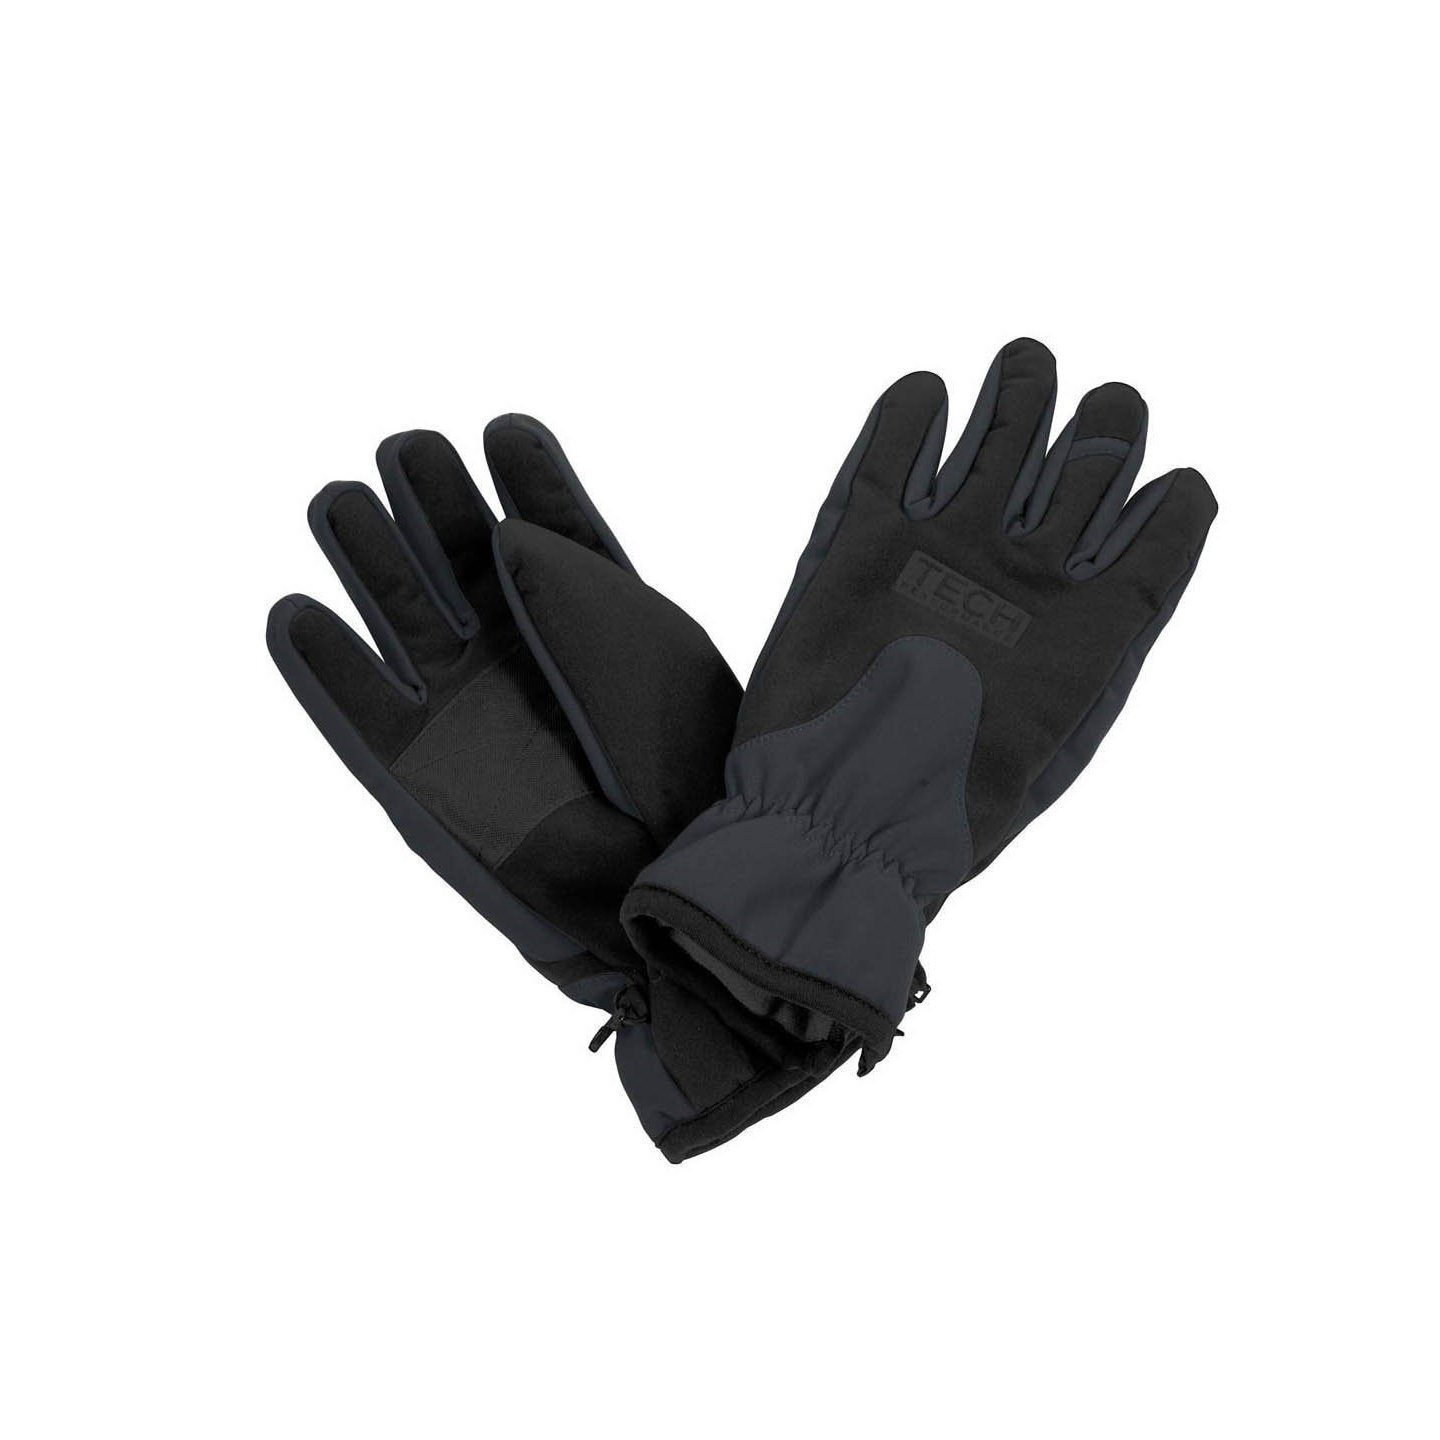 Result TECH Performance Sport Softshell Windproof Water Repellent Gloves (L) (Black/Grey)